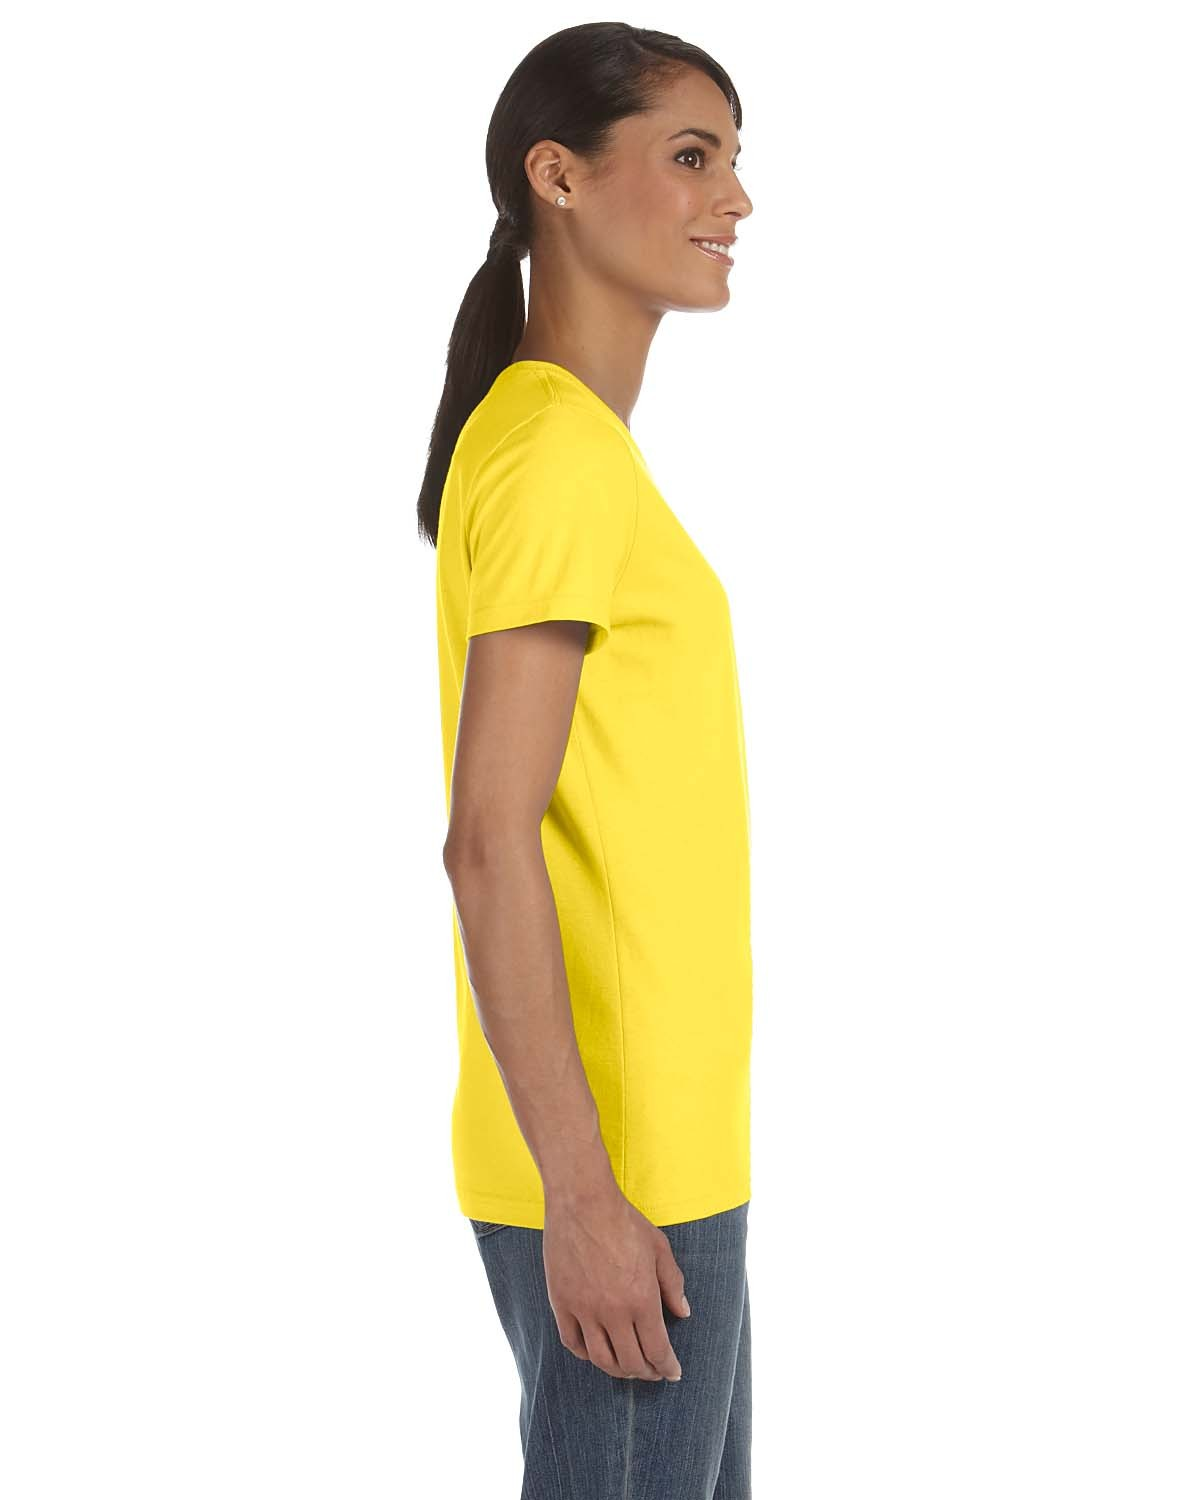 L3930R Fruit of the Loom YELLOW